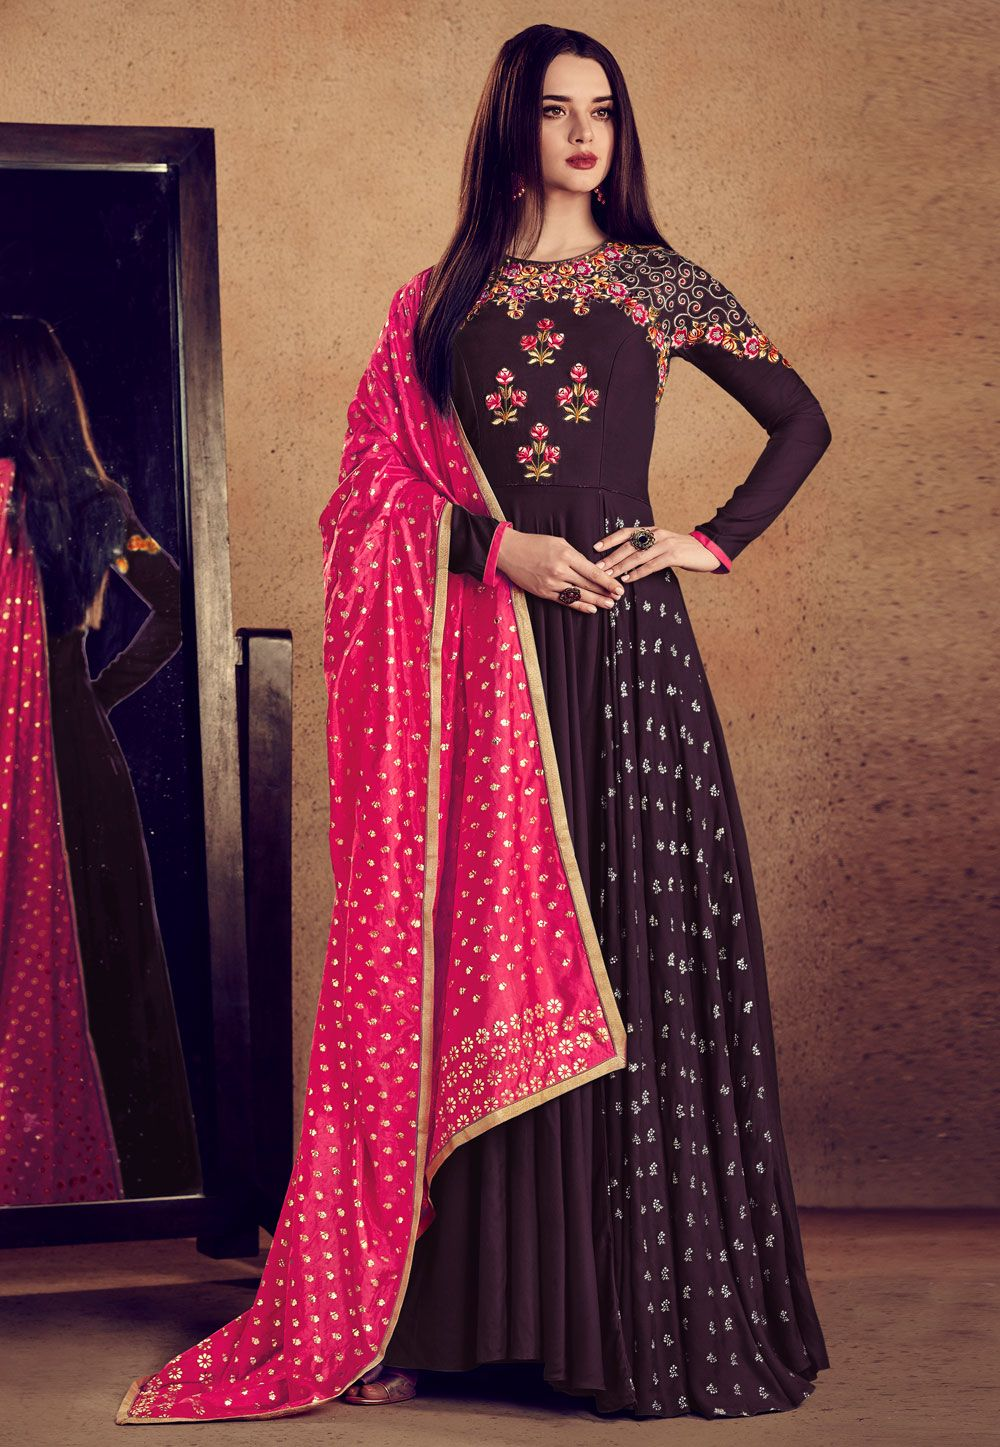 1e0b1746bd00 Buy Purple Rayon Readymade Abaya Style Anarkali Suit 163347 online at  lowest price from huge collection of salwar kameez at Indianclothstore.com.